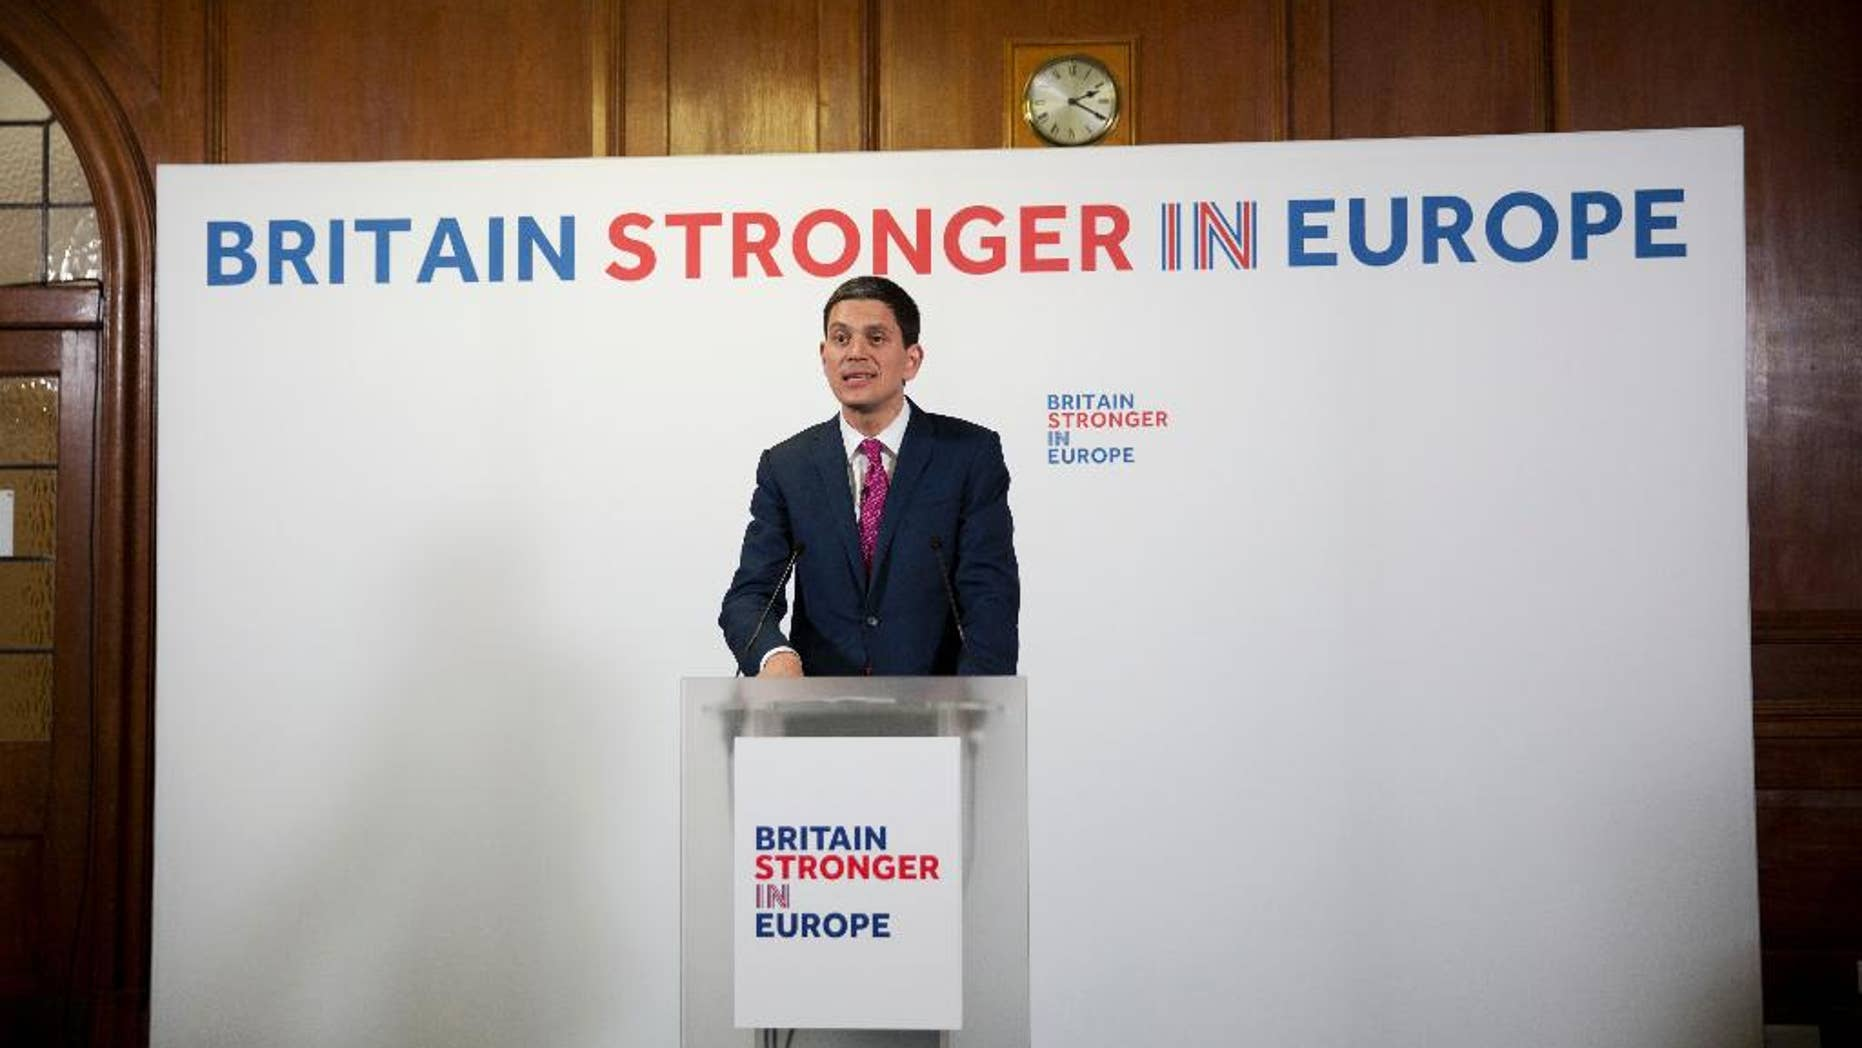 David Miliband, former British Foreign Secretary and current President and CEO of the International Rescue Committee based in New York, makes a speech on Britain's EU membership in London, Tuesday, April 12, 2016.  Miliband on Tuesday delivered the speech for the Britain Stronger In Europe campaign on the foreign policy implications on Britain leaving Europe. Britain is to hold a referendum to decide on their EU membership on June 23. (AP Photo/Matt Dunham)